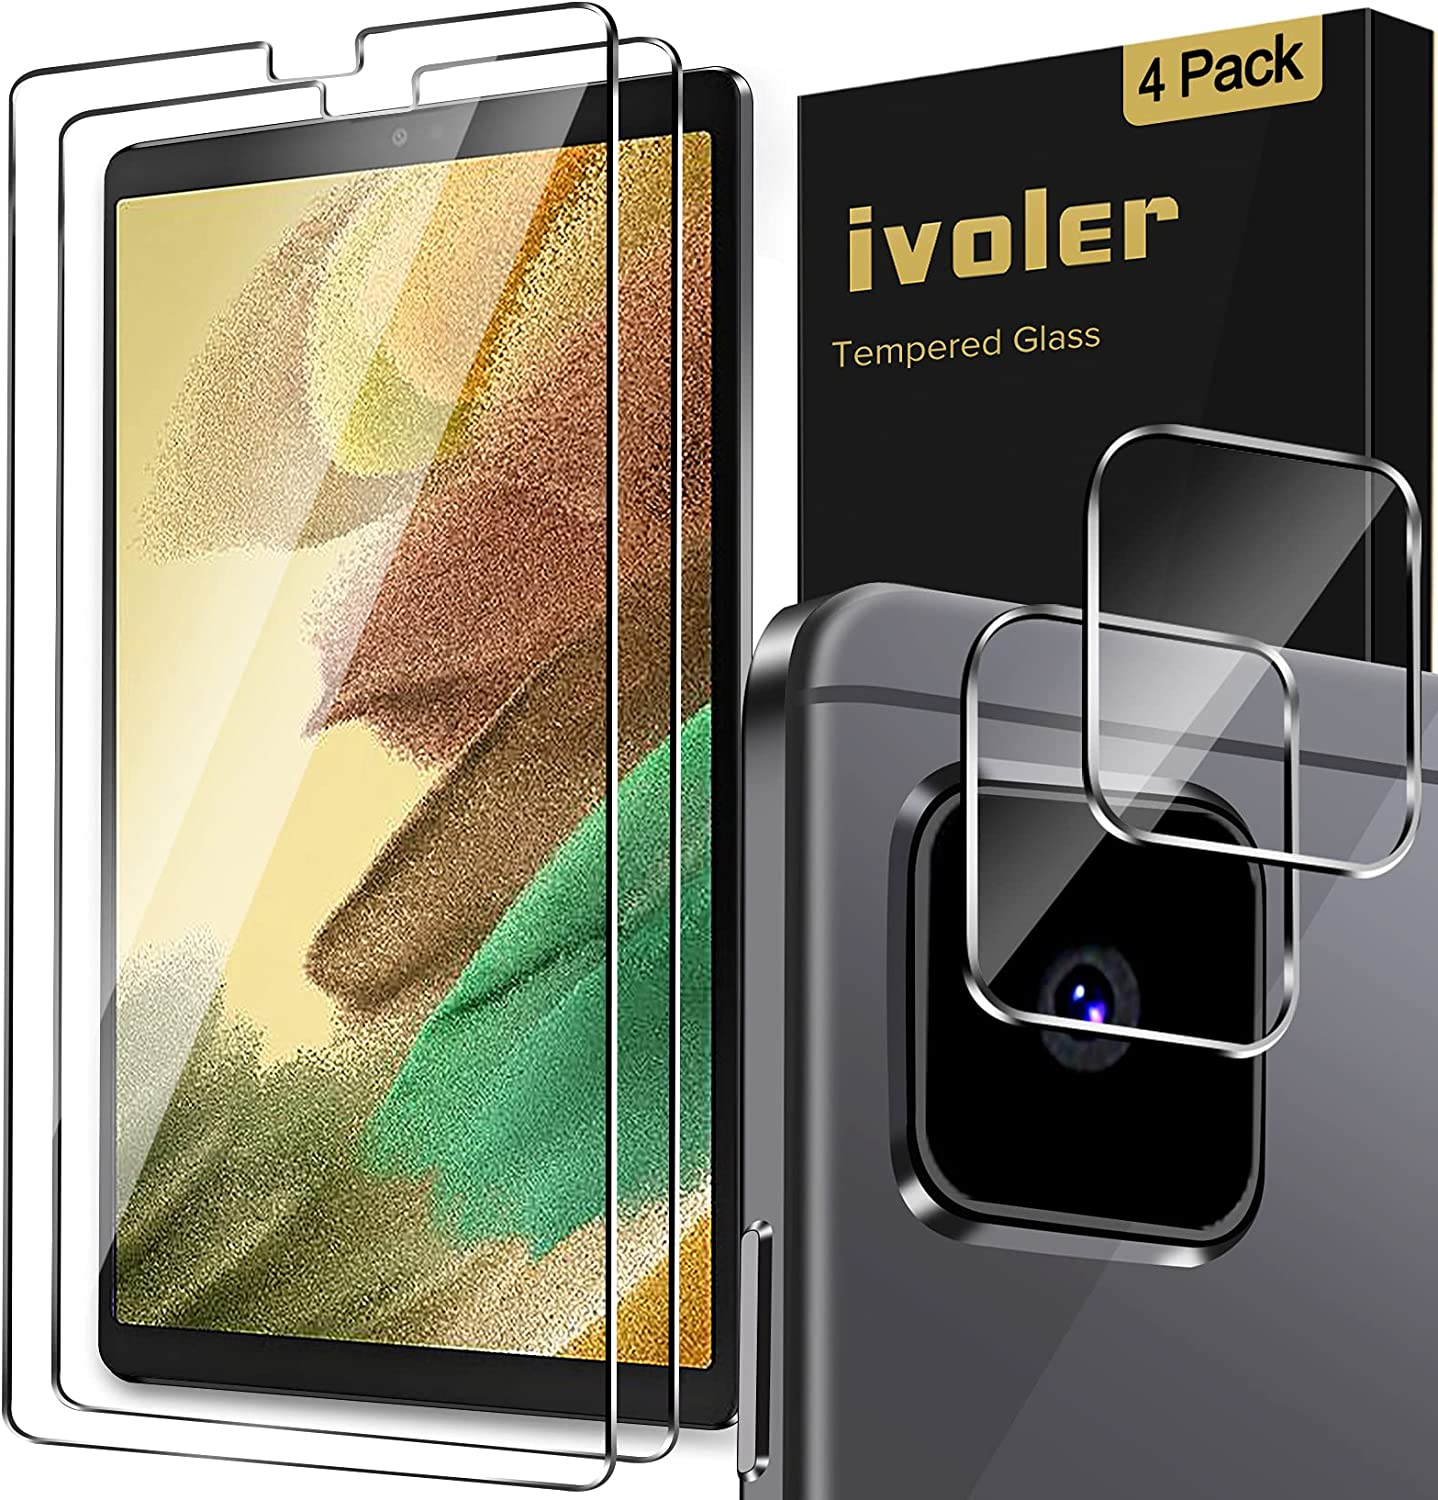 [4 Pack] iVoler (2 Pack) Screen Protector for Samsung Galaxy Tab A7 Lite 8.7inch (SM-T220 / T225) 2021 with 2 Pack Camera Lens Protector Tempered Glass, Scratch Resistant Anti-Fingerprints HD Clear